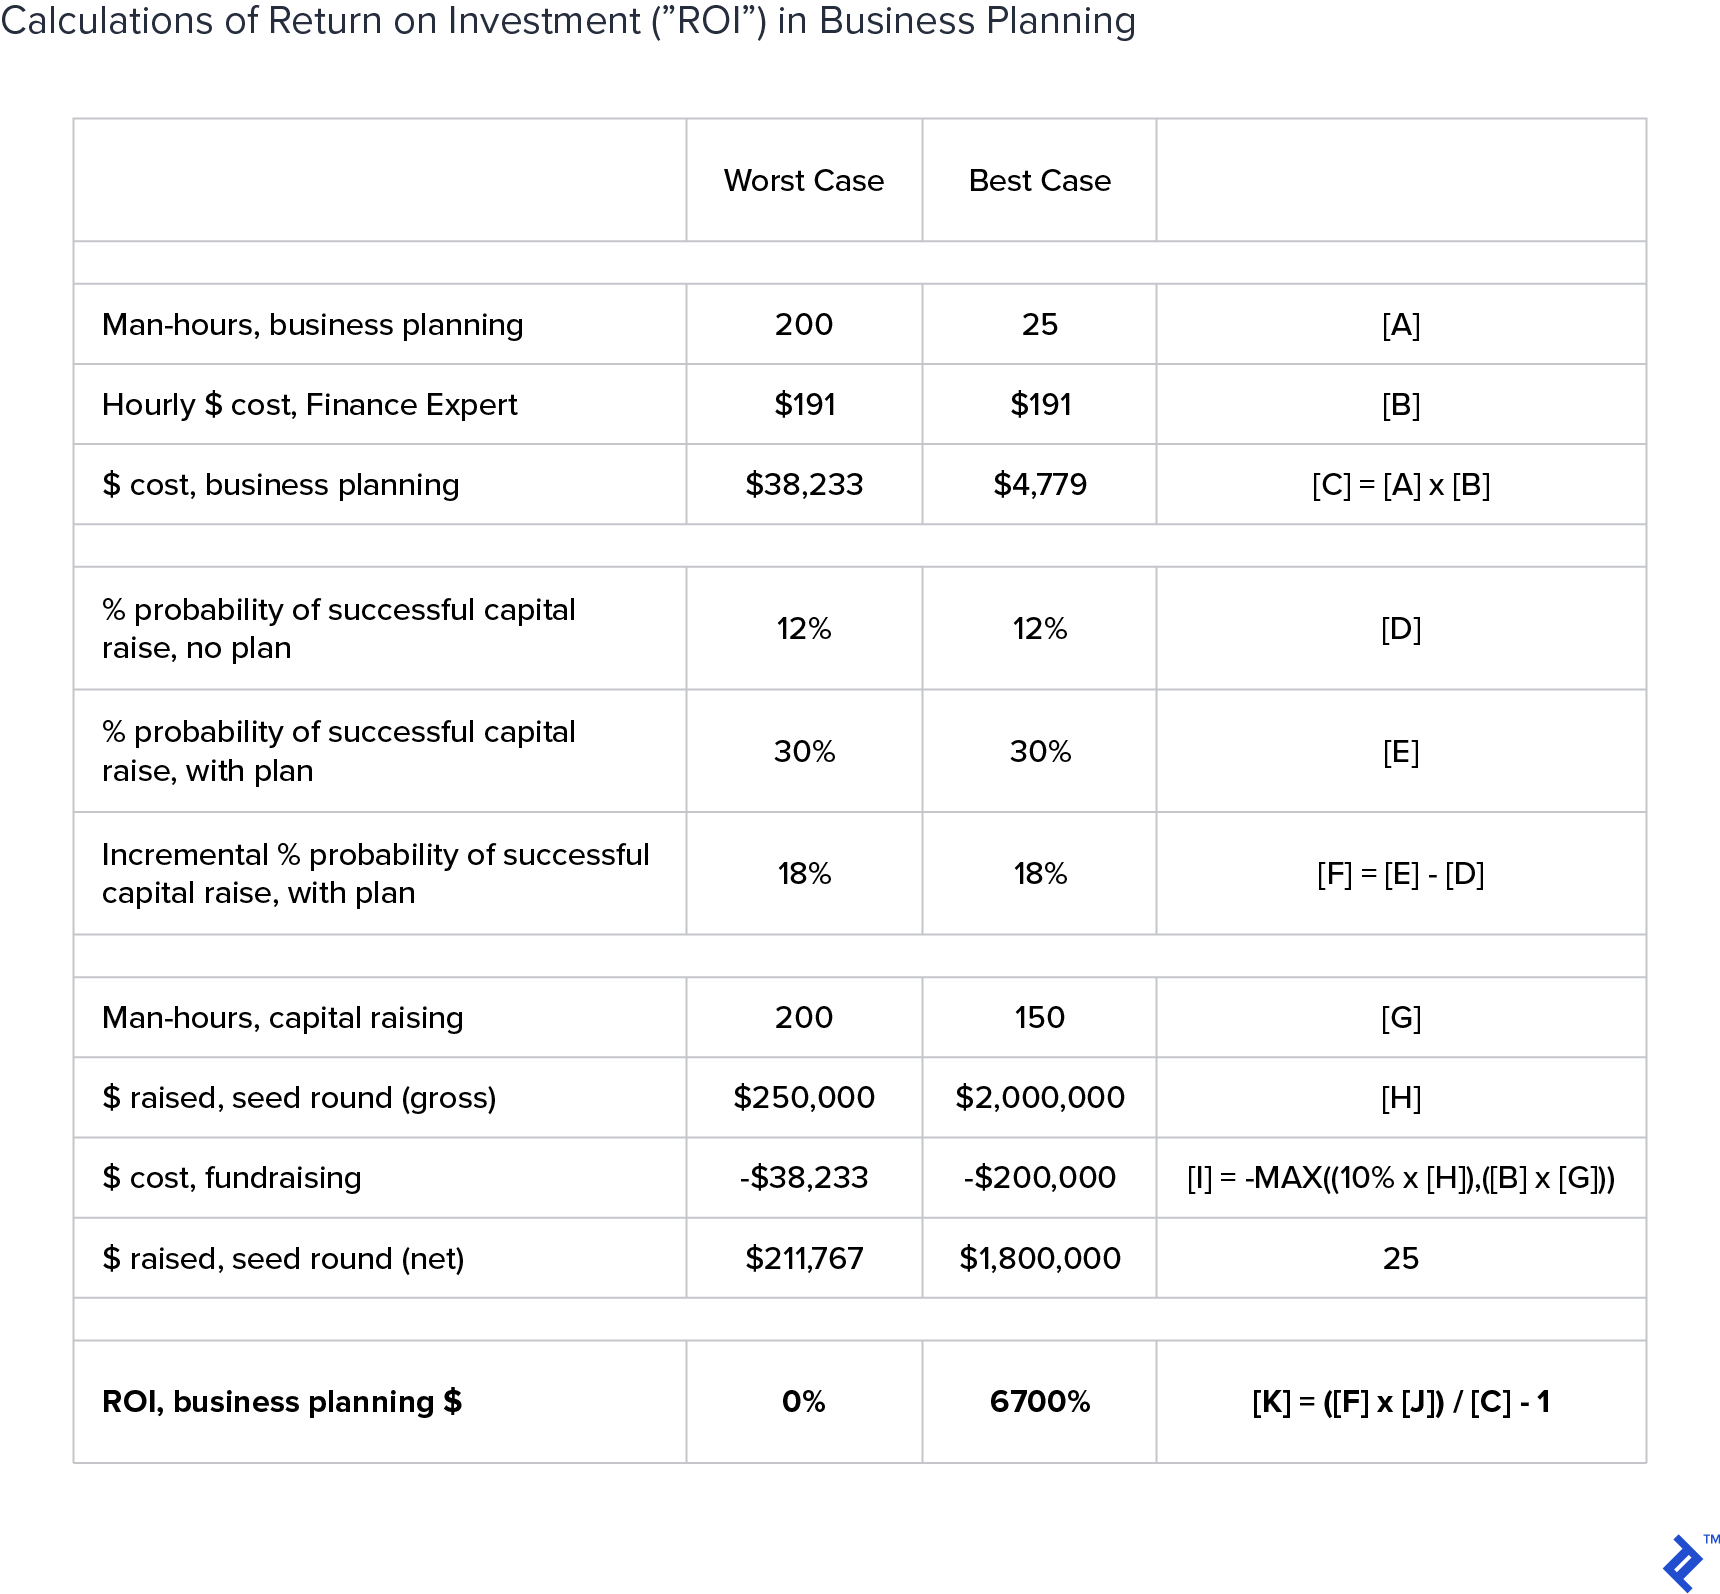 A table showing calculations on return of investment in business planning